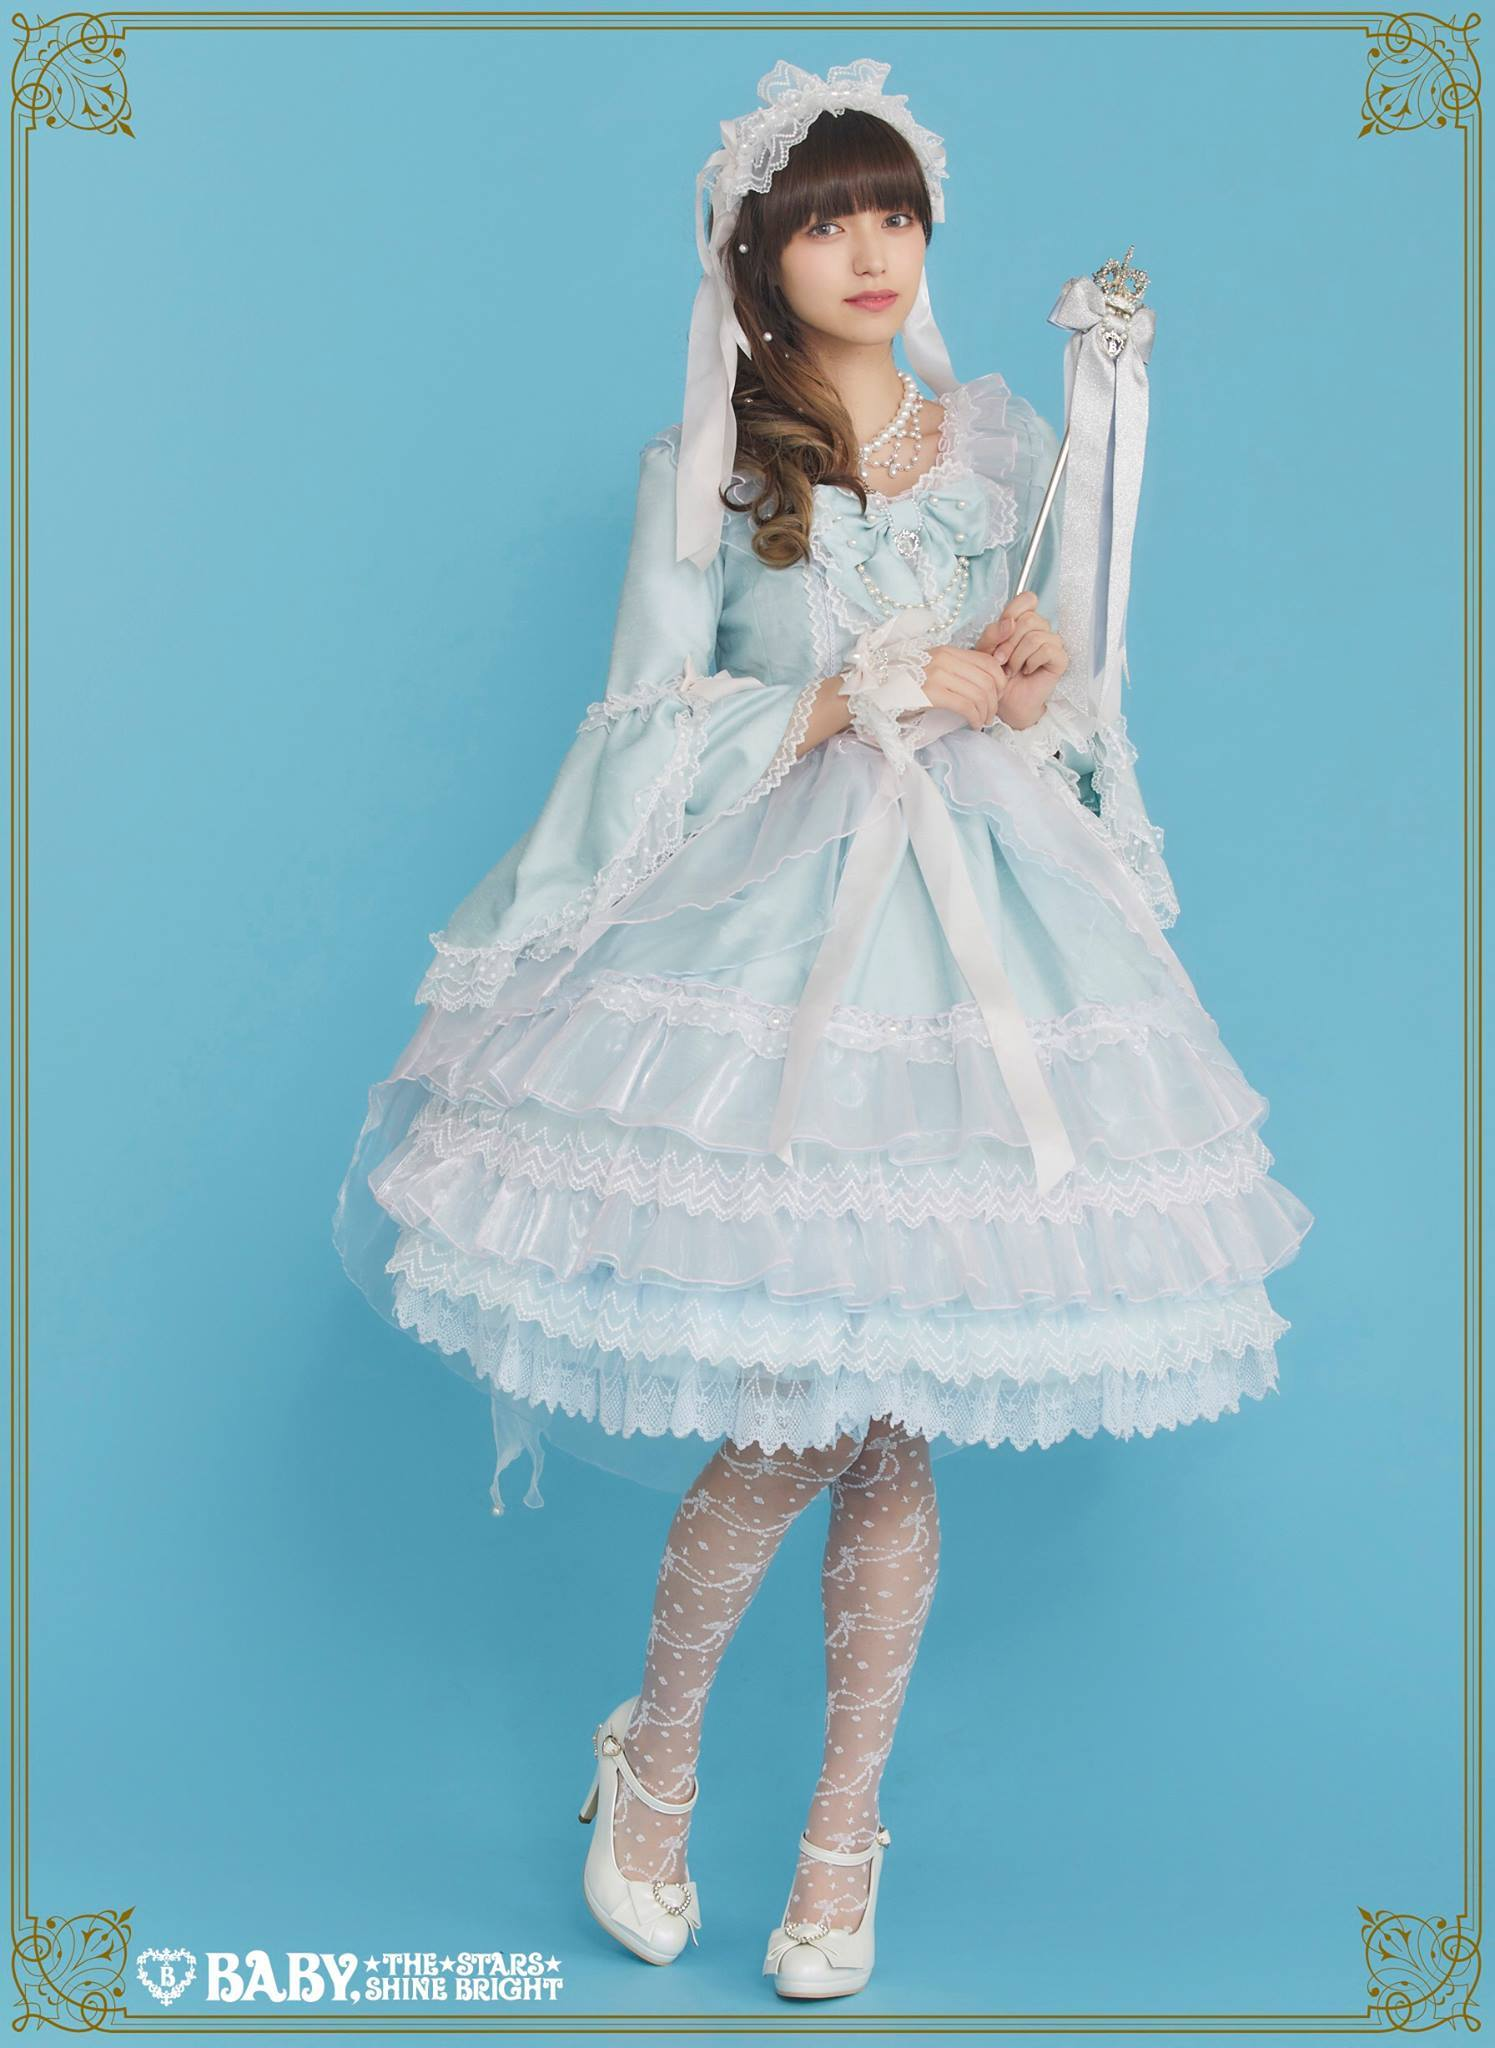 tights decorated with white patterns, and a knee-length pale blue dress, with lots of flounces and frills, worn by a slim brunette japanese woman